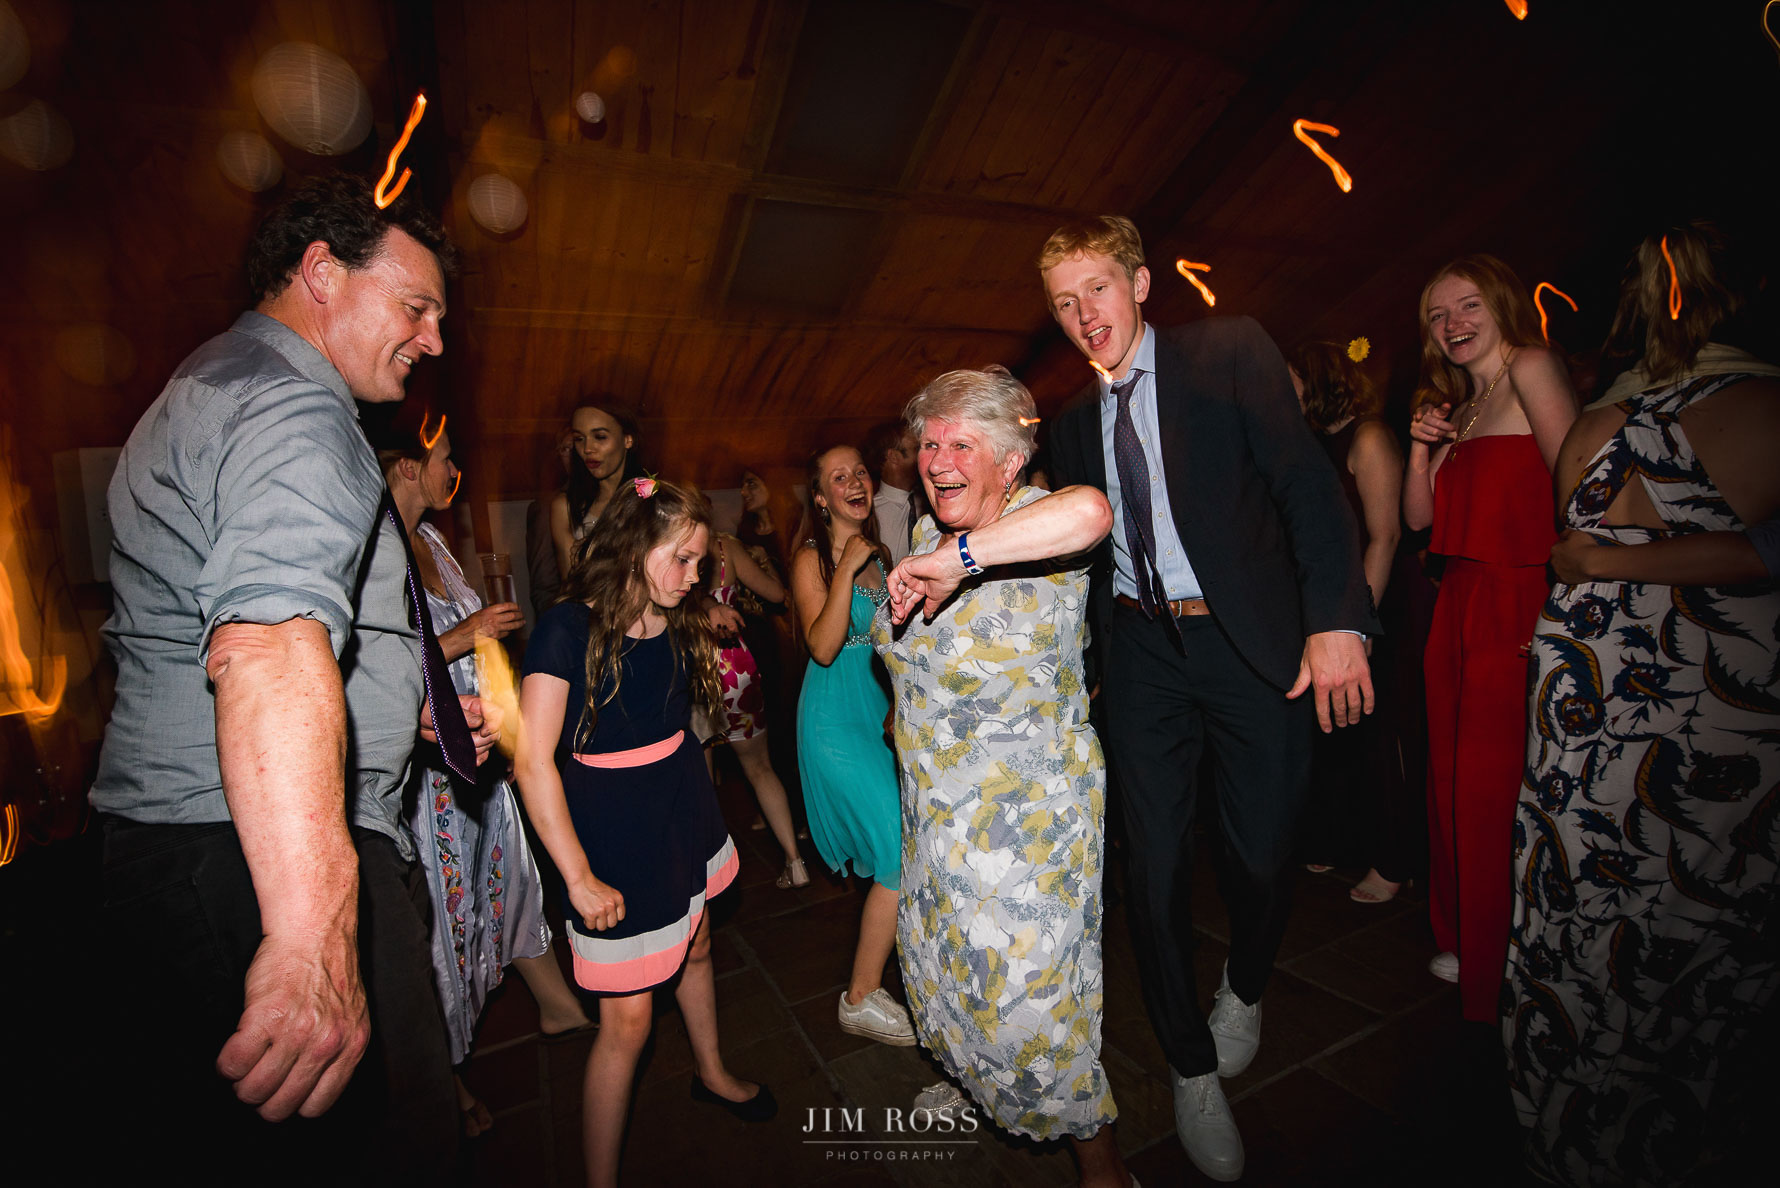 Gran holding her own on the dance floor